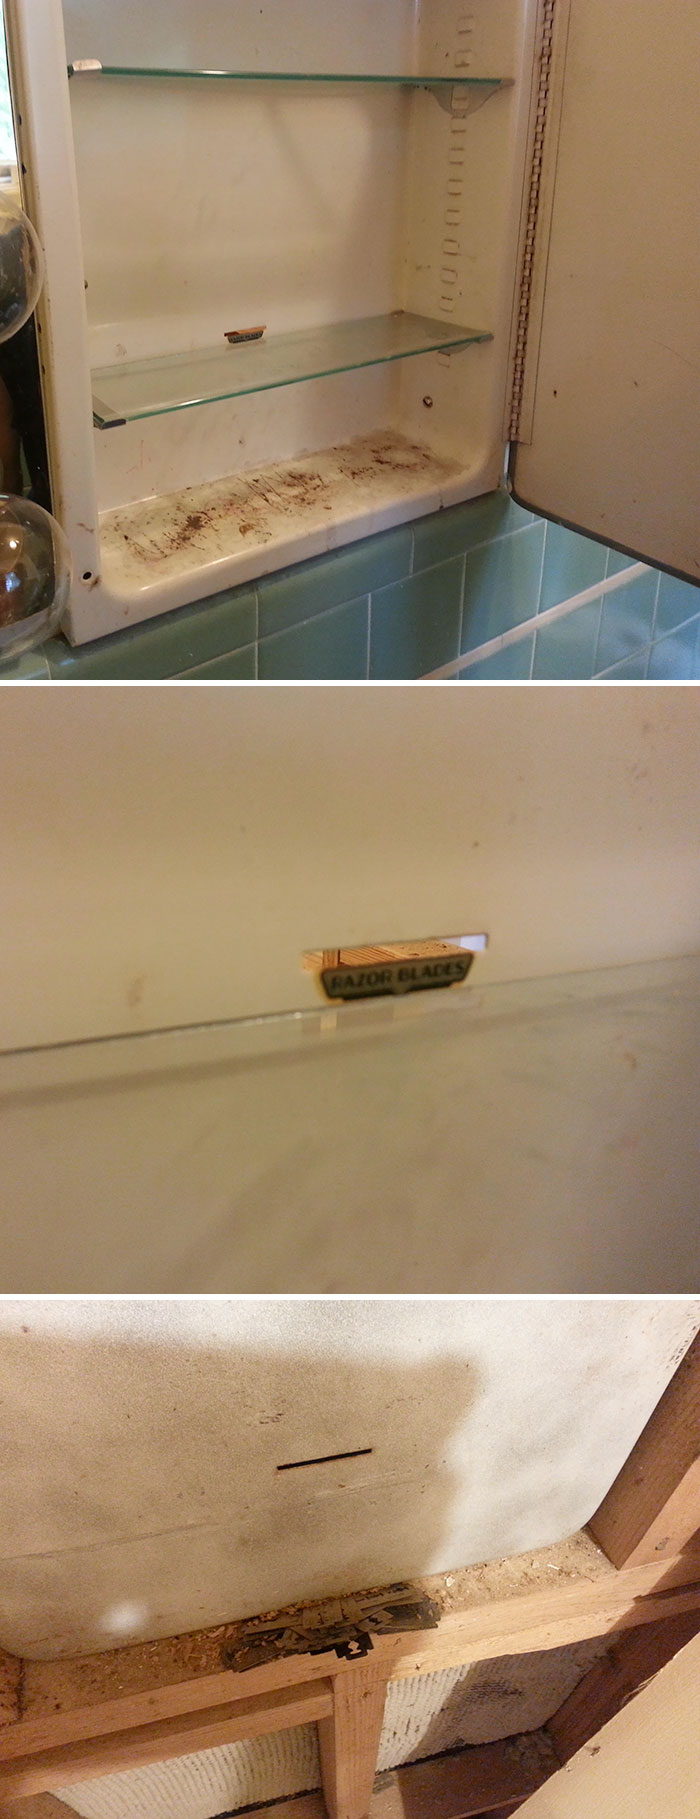 Apparently, Disposing Of Old Razor Blades Inside Your Wall Was Acceptable In The 1950's